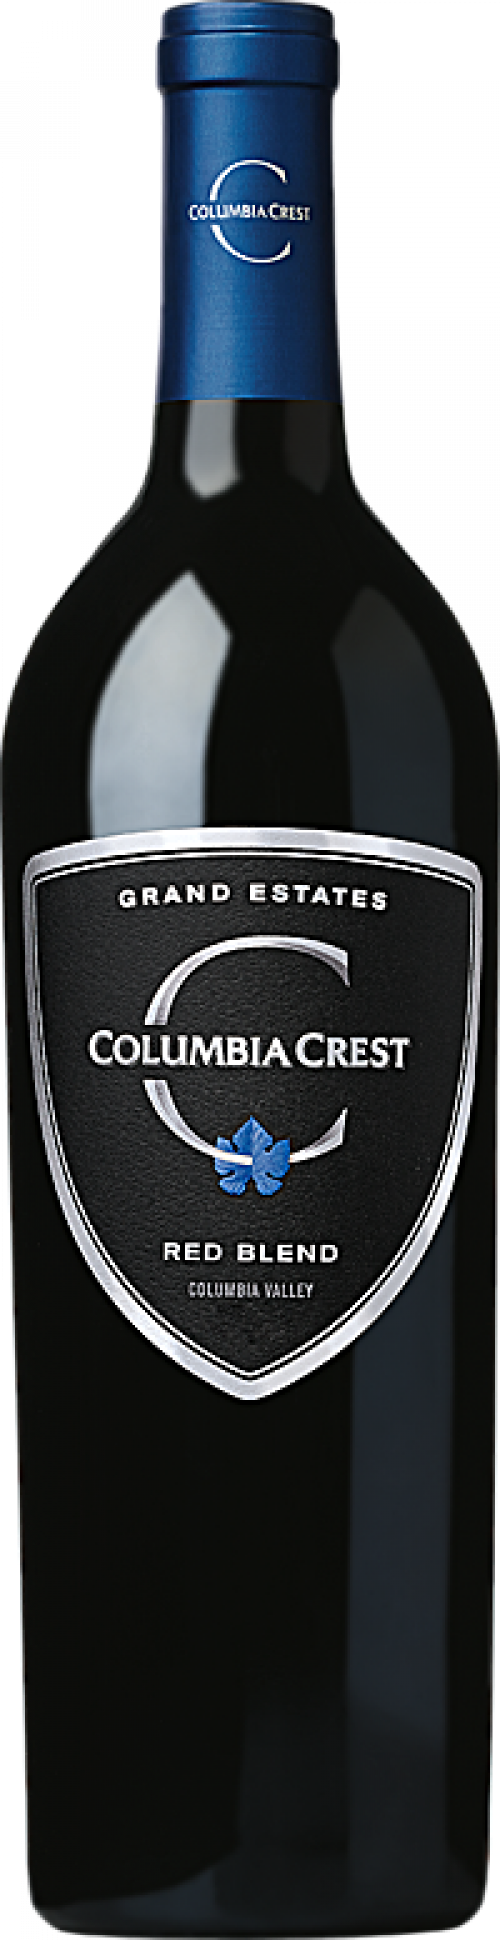 2015 Columbia Crest Grand Estates Red Blend 750ml